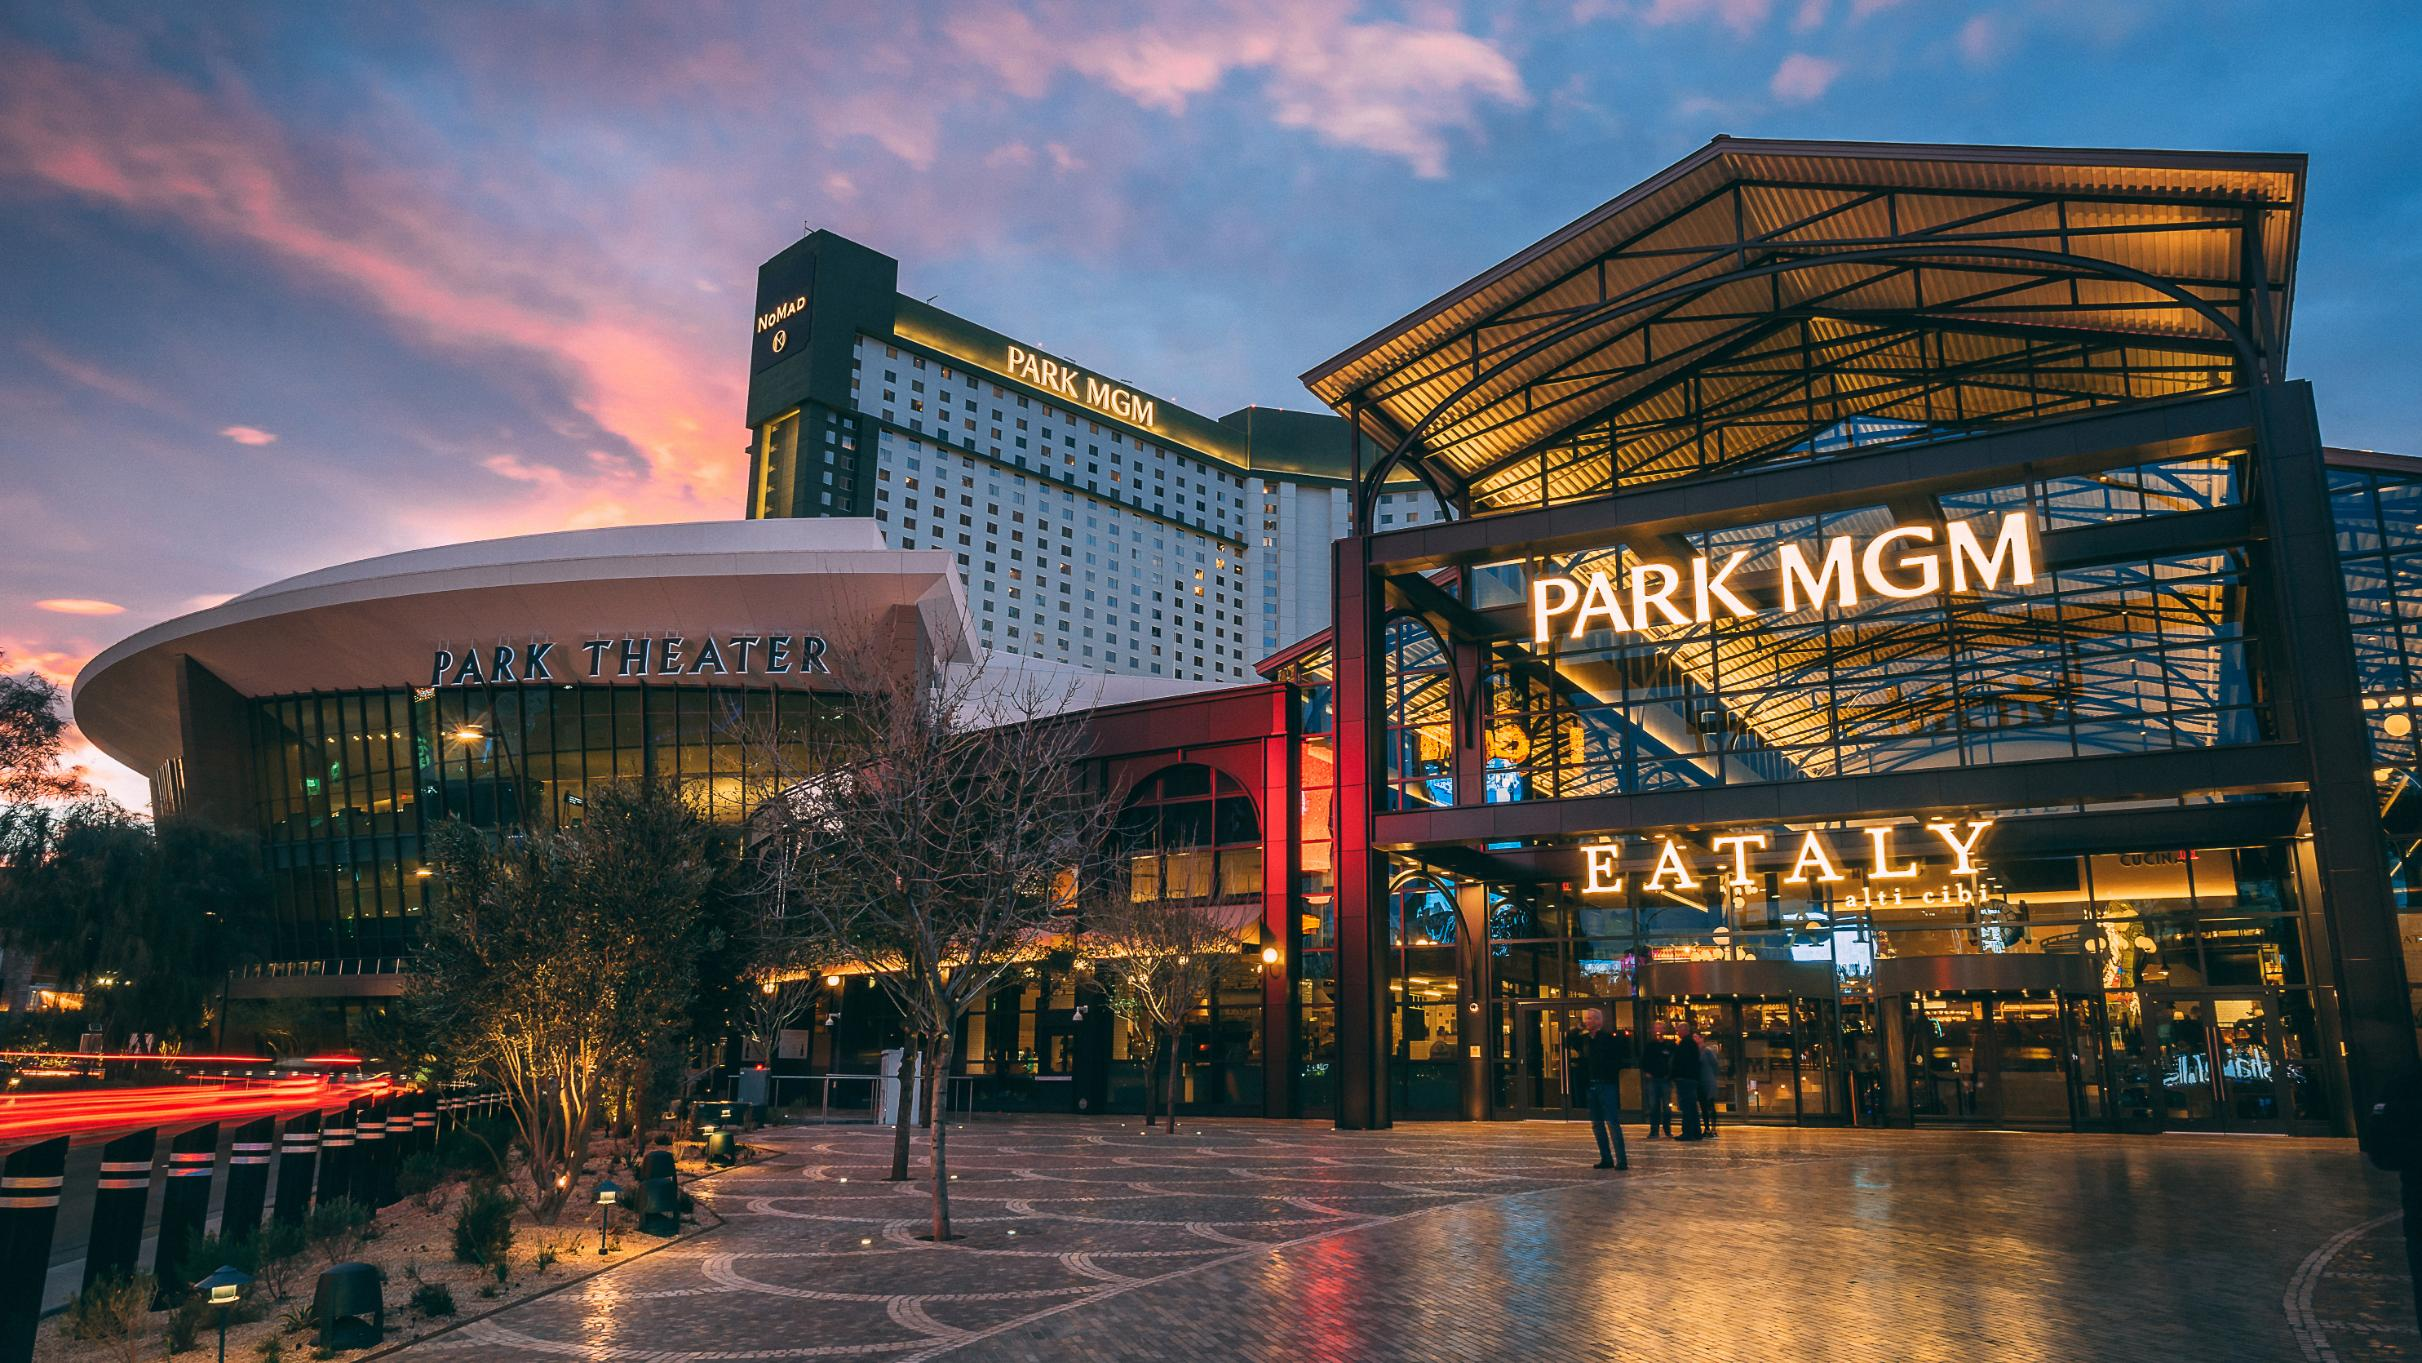 Las Vegas Park Mgm Will Have Smoke Free Casino When It Reopens Cnn Travel